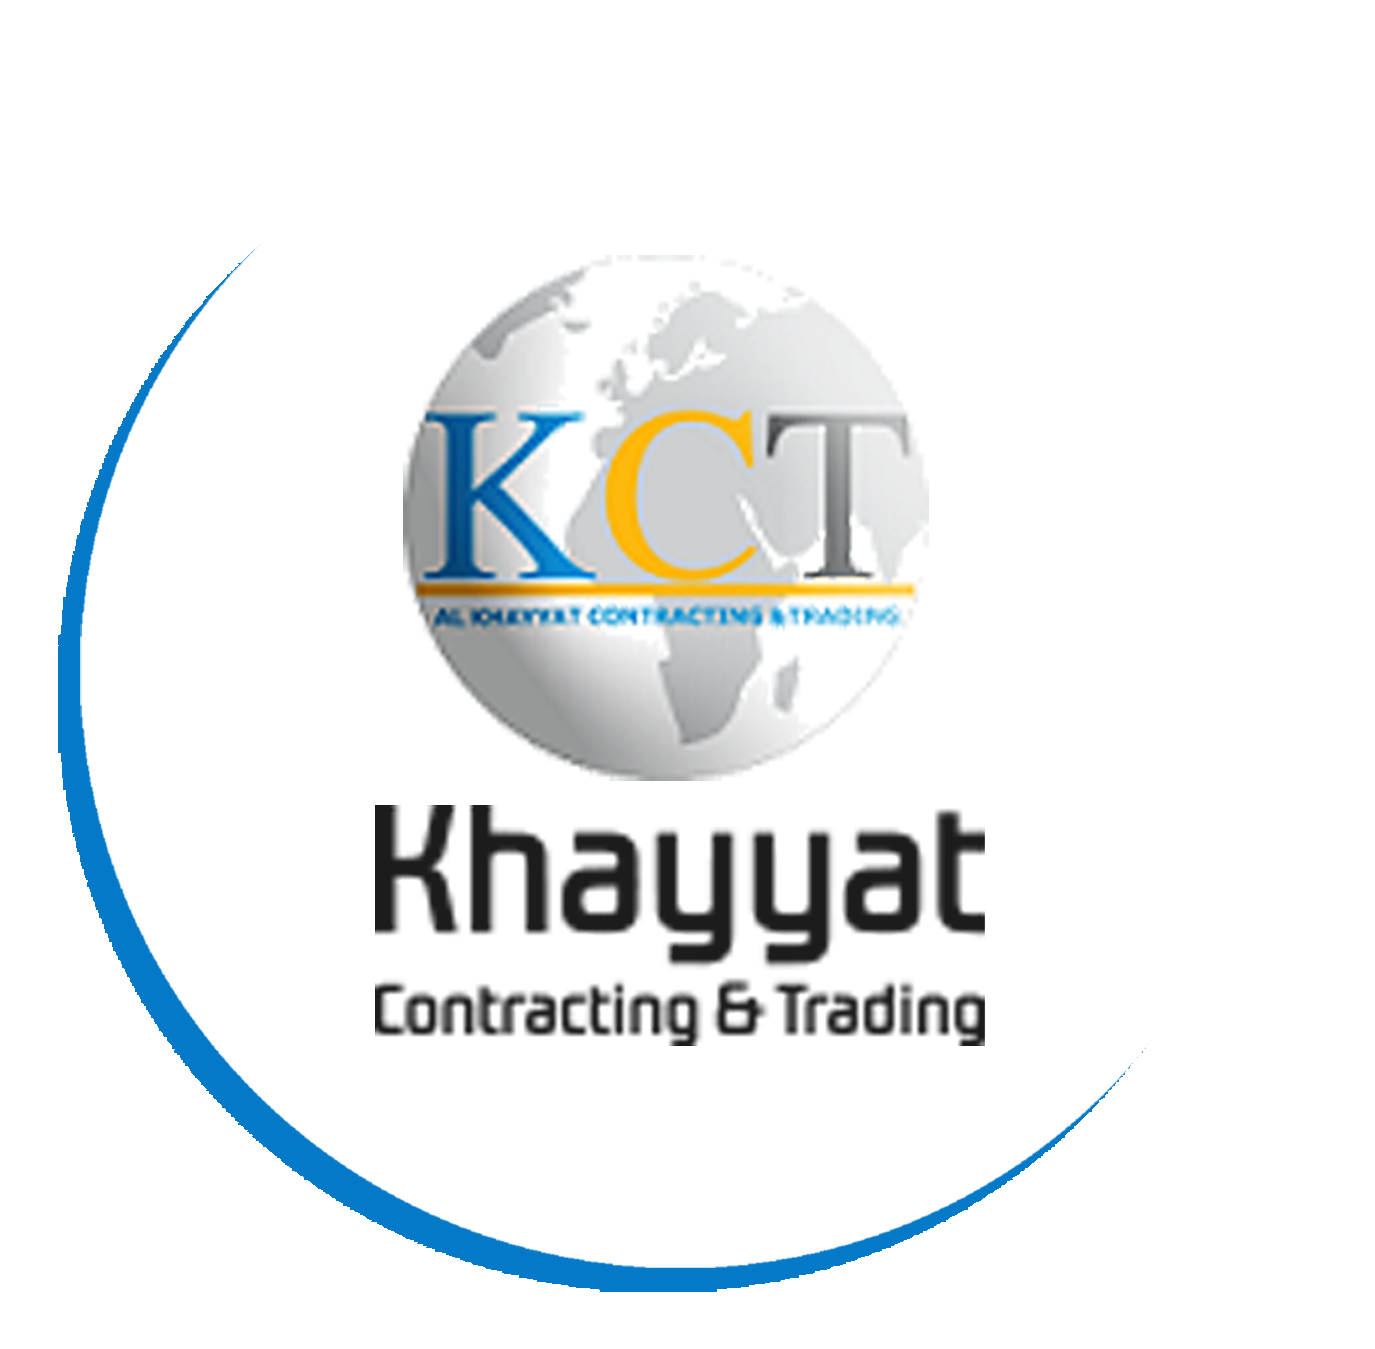 AL KHAYYAT CONTRACTING & TRADING